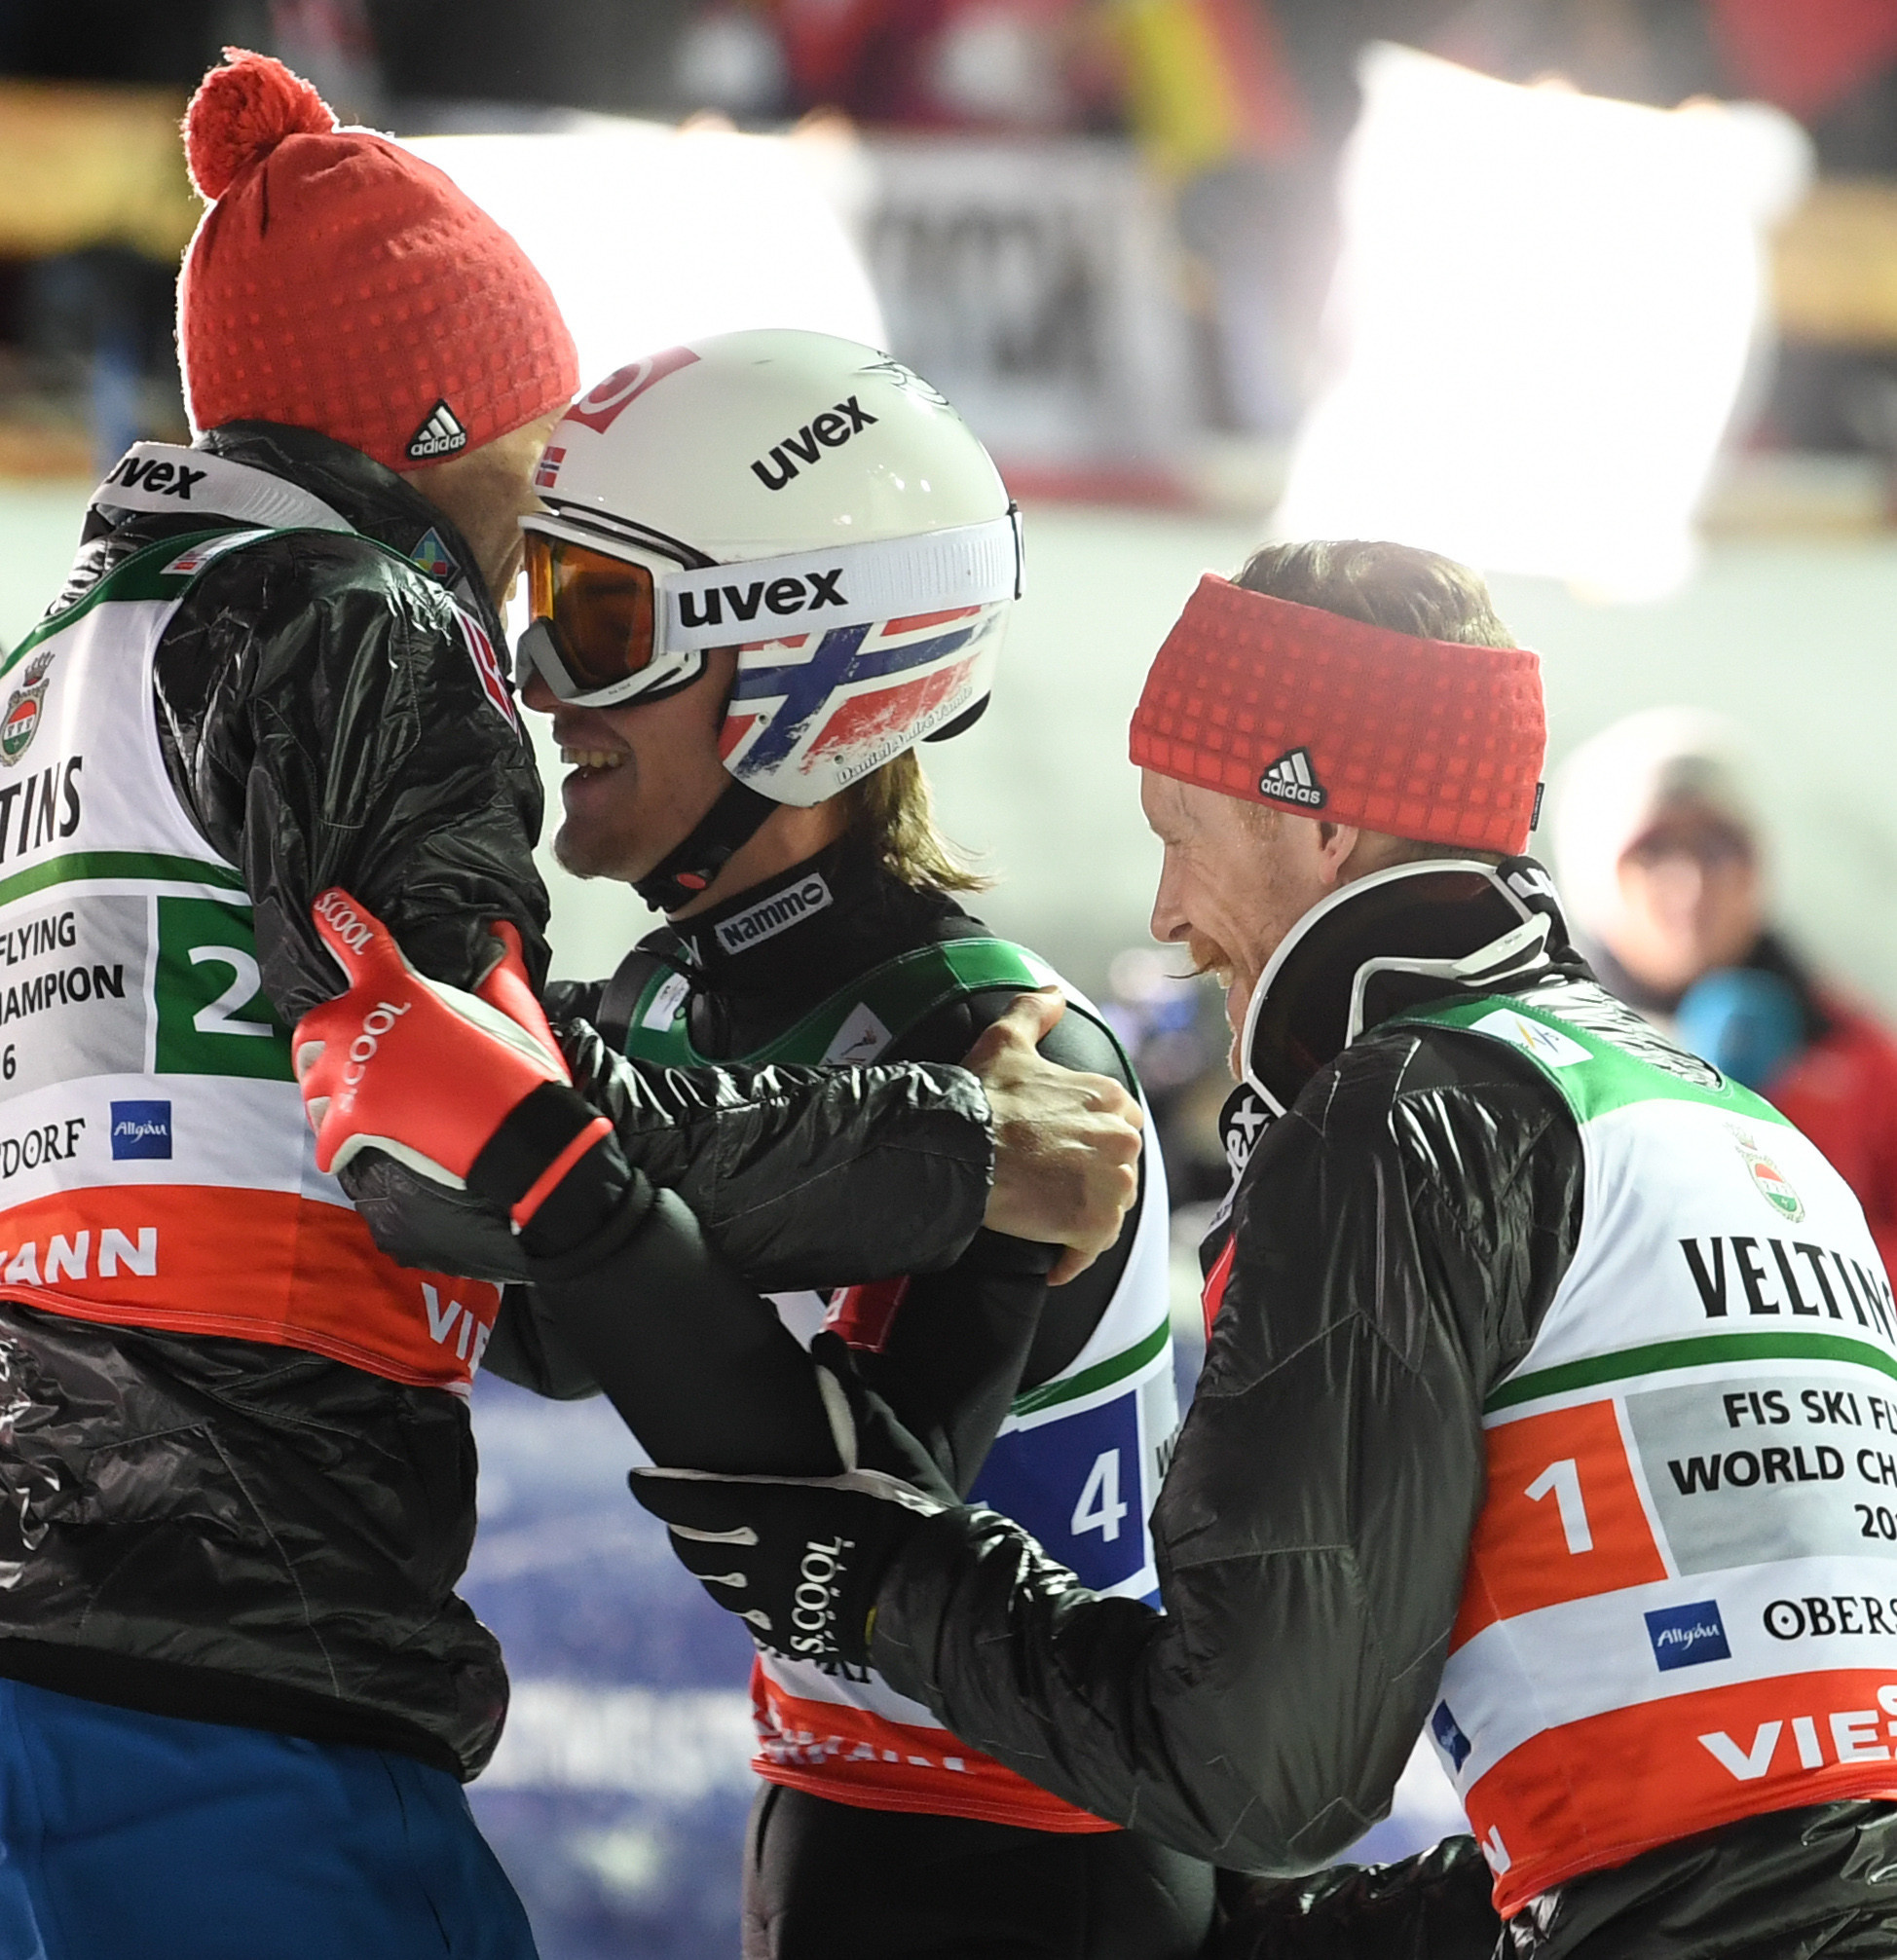 New ski flying world champion Tande to miss World Cup resumption with virus